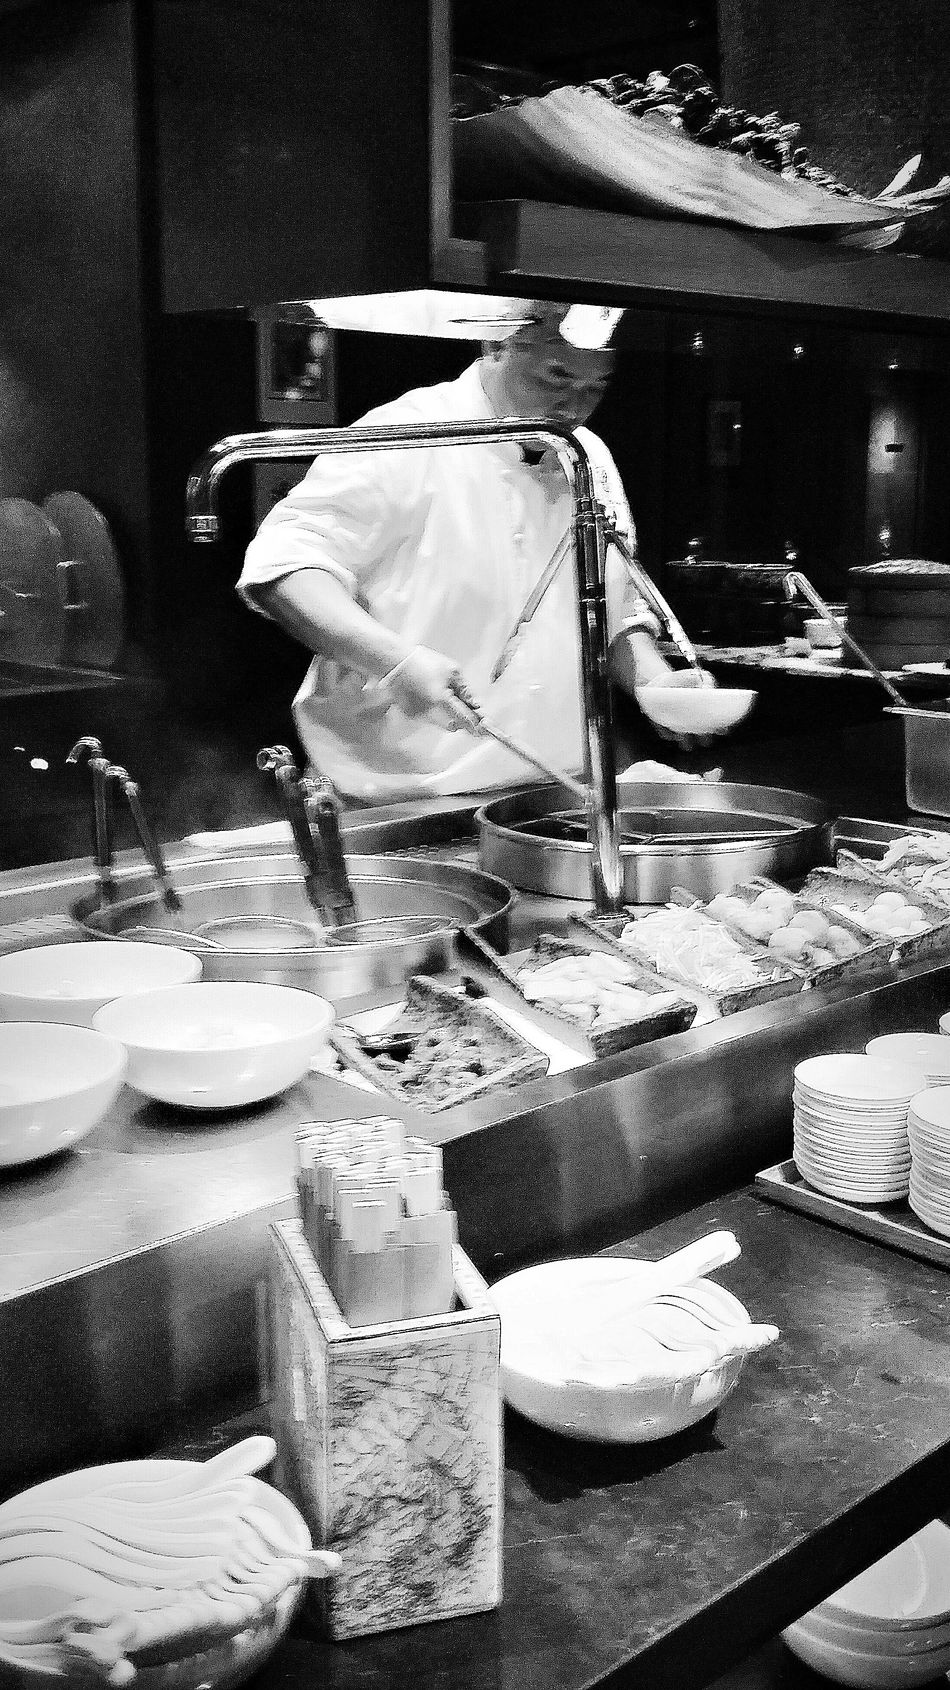 Chef Cooking Noodle Soup The Colony Restaurant Ritz Carlton Streetphotography EyeEm Gallery Eyeemcollection Eyemphotography Eyeem Streetphotography Bnw Bnw_streetphotography Bnw_collection Bnw_life Bnw_society Bnw_city Bnw_globe Bnw_photo Bnw_planet Bnw_captures Bnw_worldwide